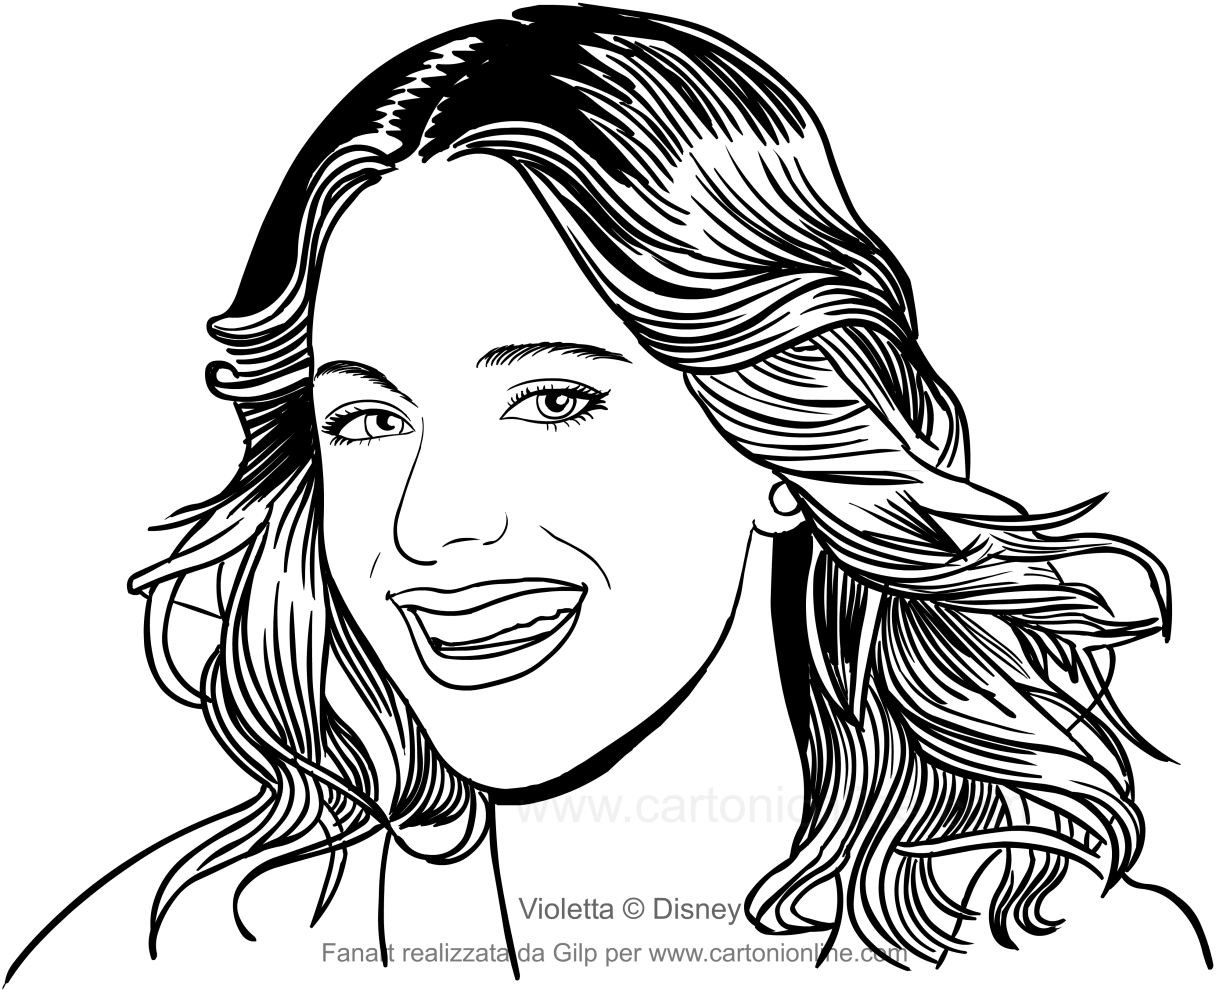 Drawing The Face Of Violetta Who Smiles Coloring Pages Printable For Kids